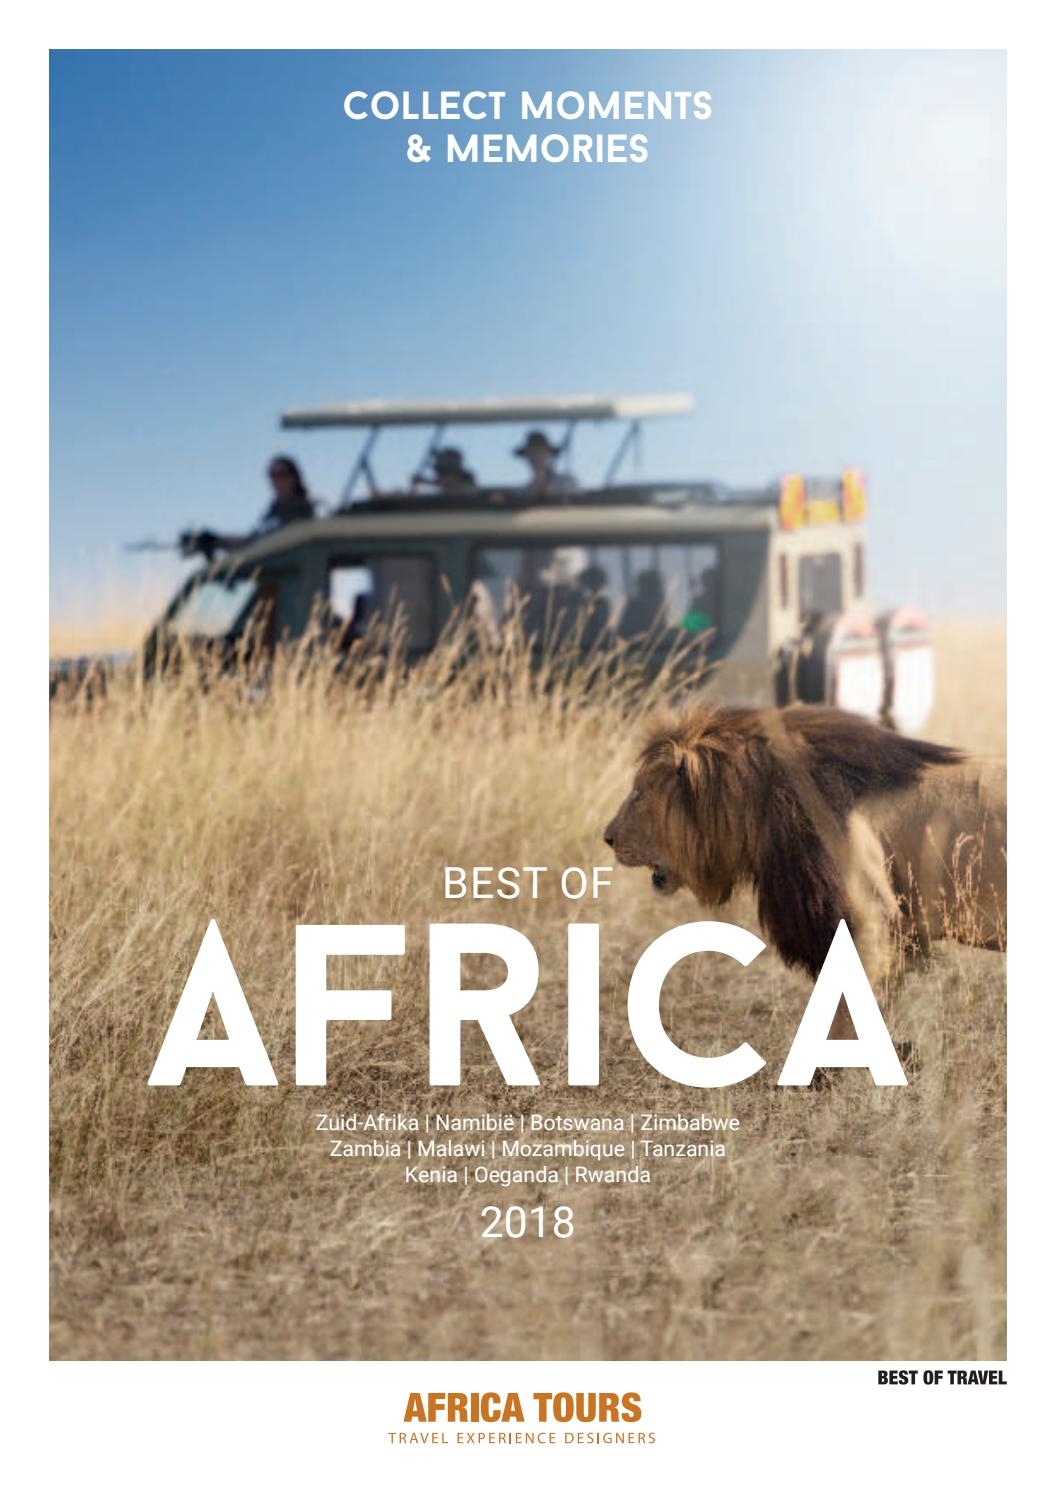 0f5b2173065 Best of Travel - Africa Tours - Best of Africa 2018 by Best of Travel -  Latin Tours - Asia Tours - Africa Tours - issuu